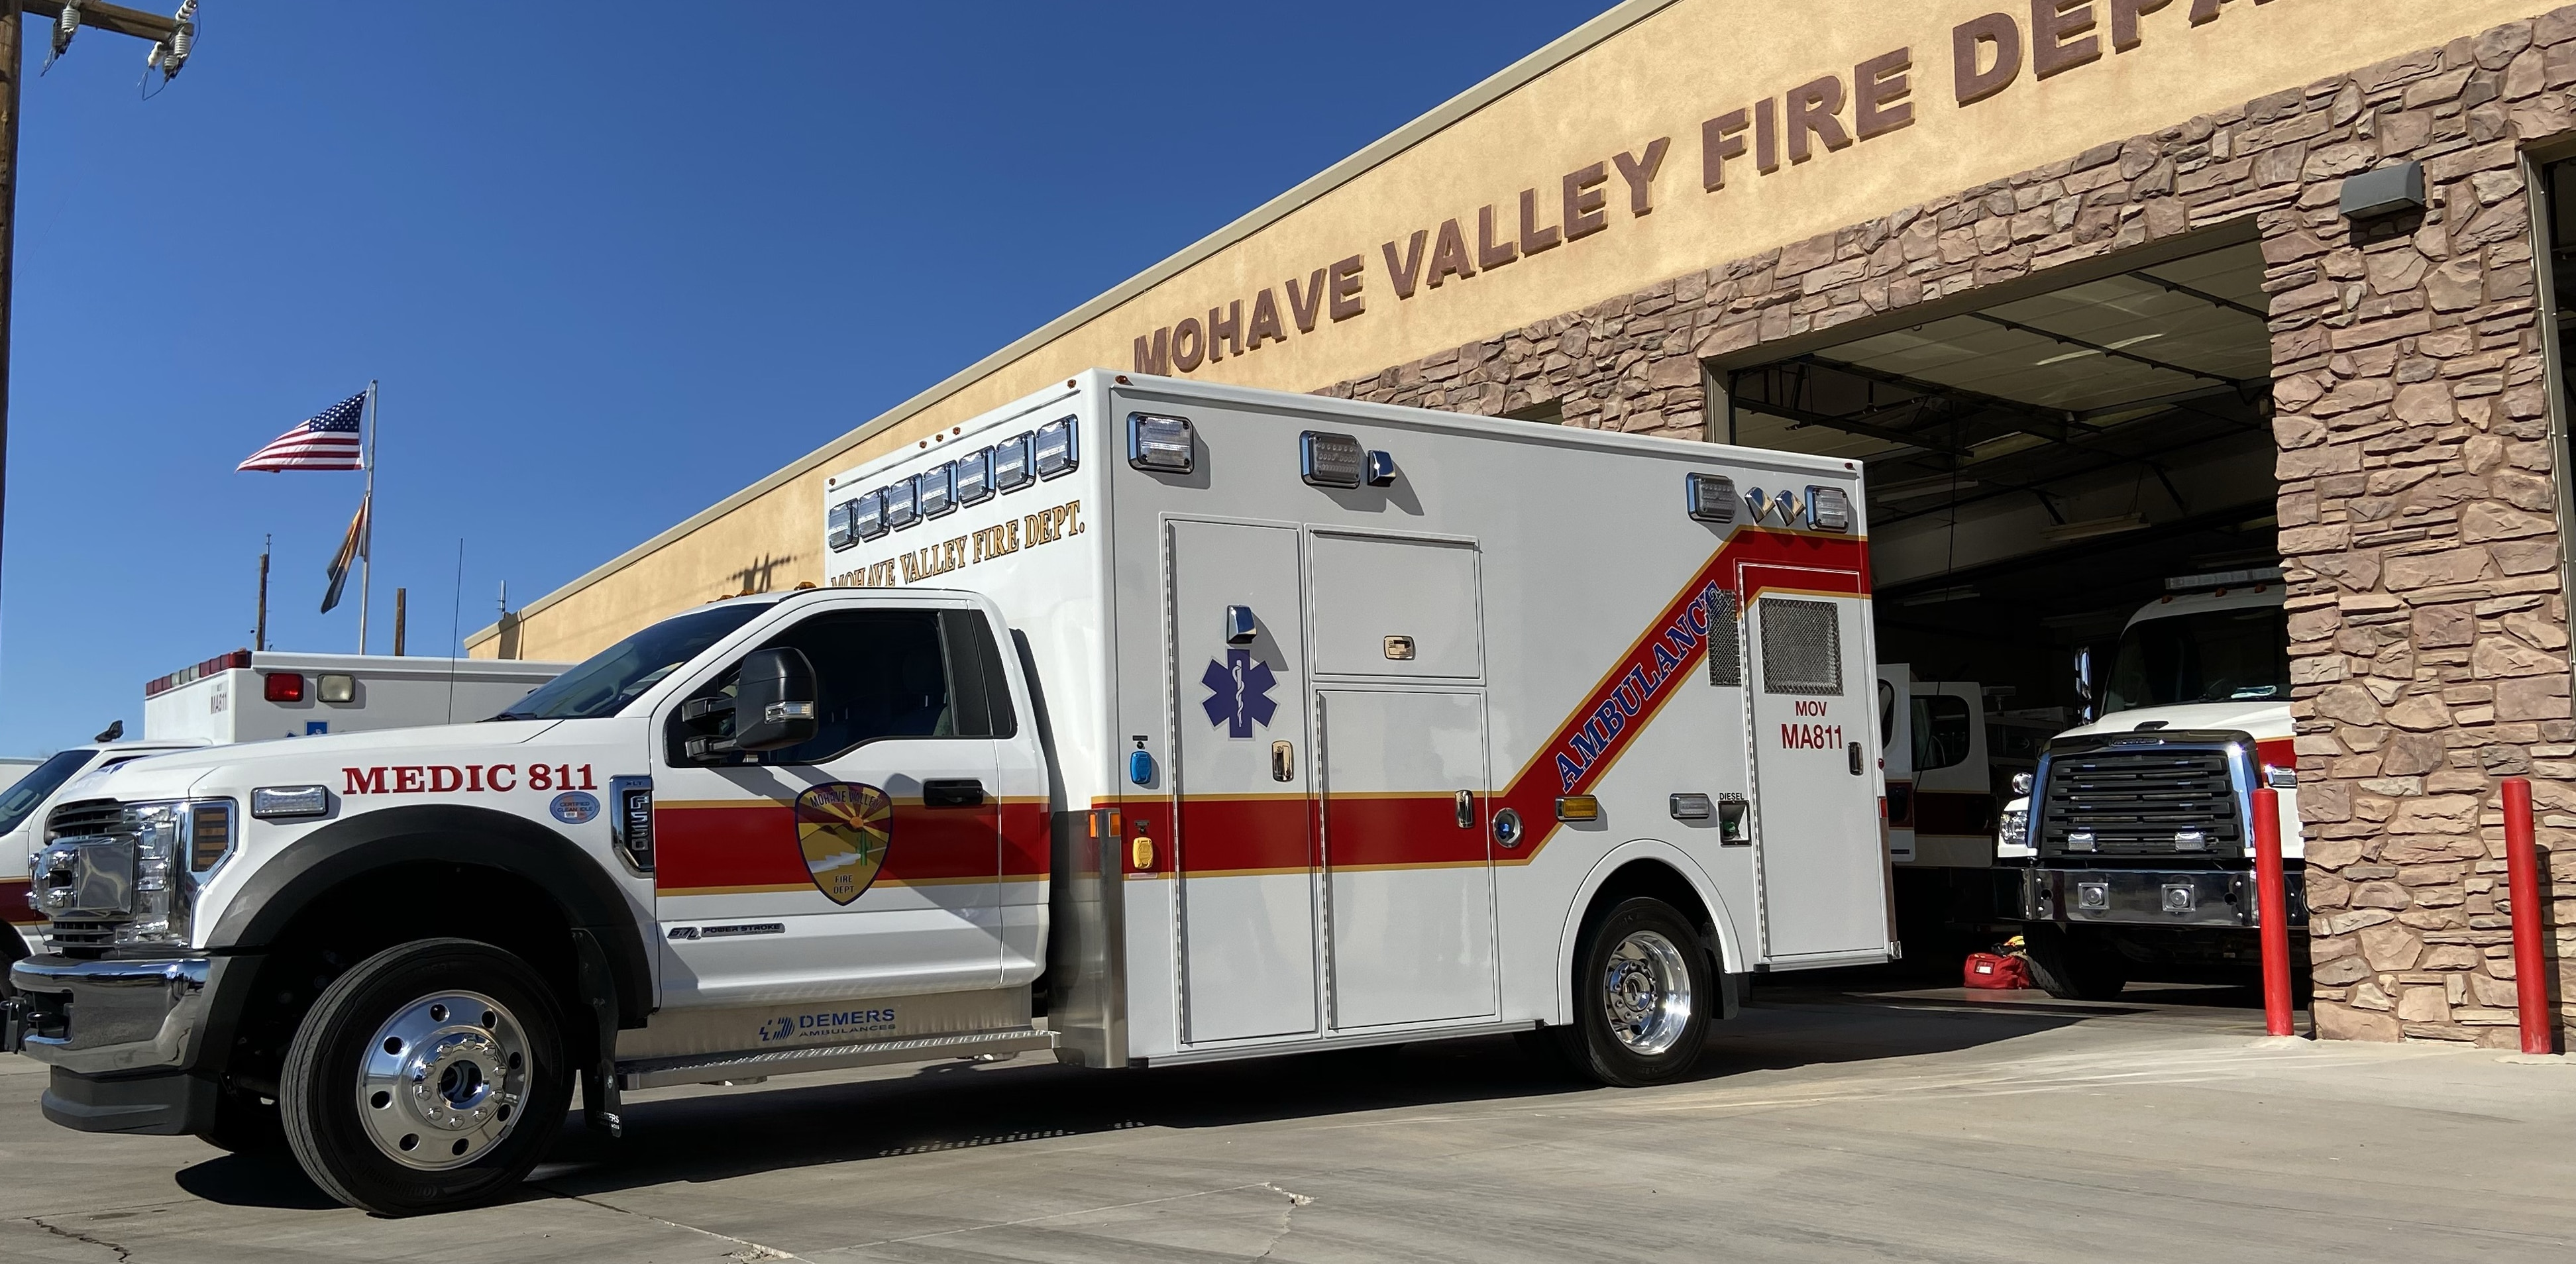 Mohave Valley FD - Demers MXP170